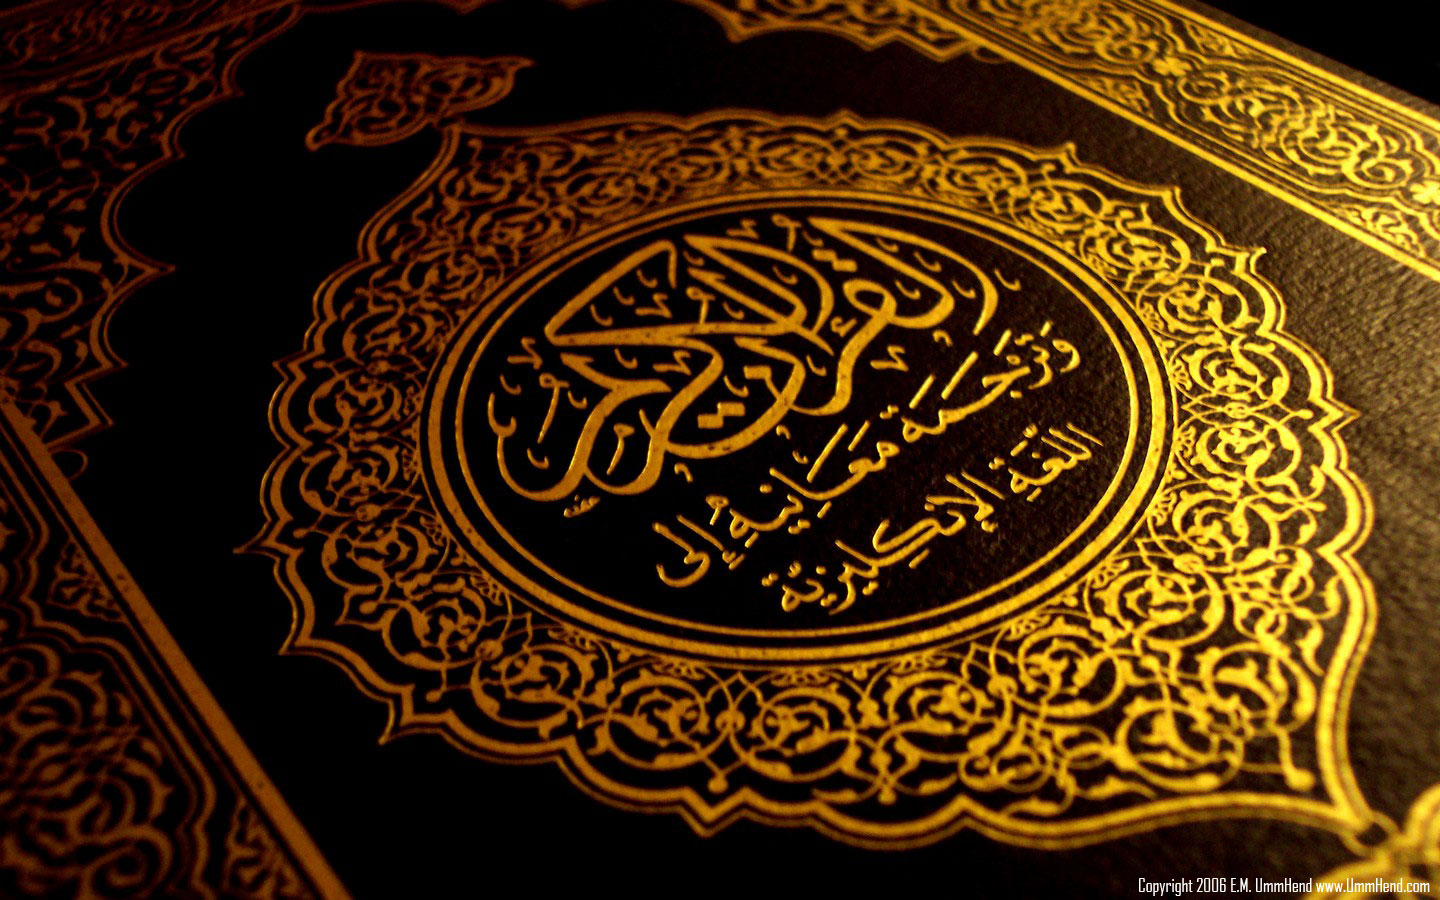 What is the Qur'an? What is the Qur'an about? Is the Qur'an the word of God? What is striking about the Qur'an? What does the Qur'an say about other religions? Does the Qur'an support killing non-Muslims? Does the Qur'an teach terrorism? Why are there different interpretations of the Qur'an?